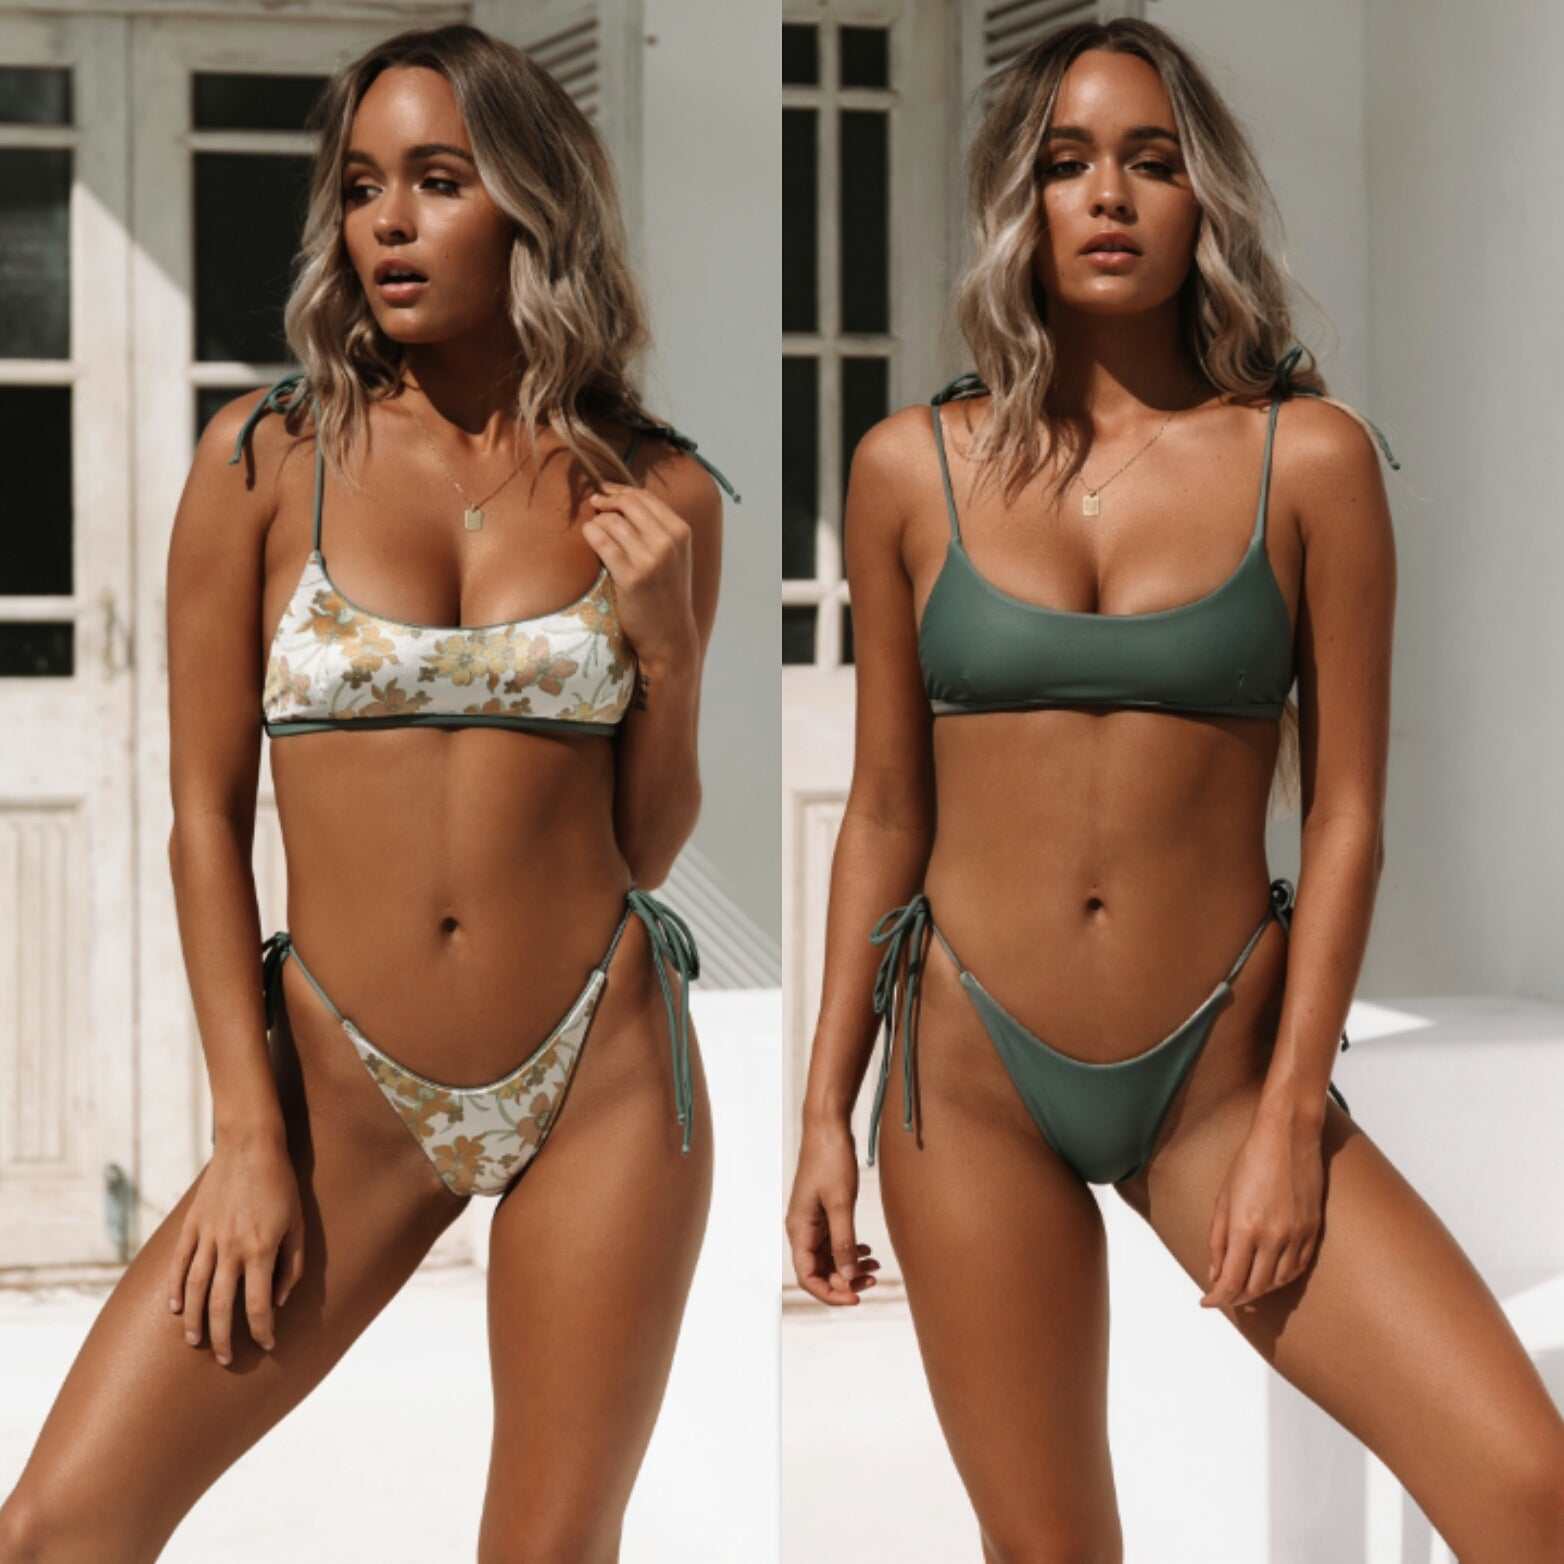 Oasis Scoop Bralette Reversible Swim Top in Khaki/Khaki Floral